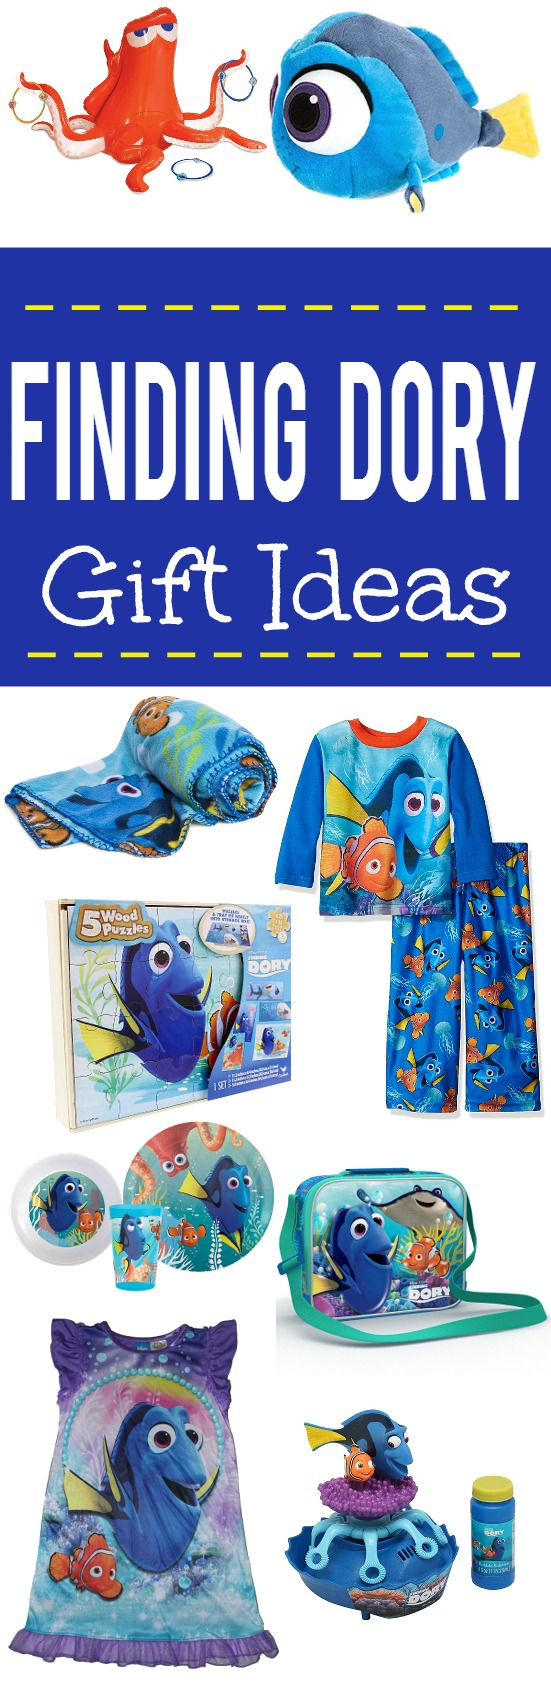 15 Finding Dory Gift Ideas - Finding Dory Gift Guide with15 adorable and fun Finding Dory Gift Ideas that are perfect for the Finding Dory fan in your life. Perfect gift ideas for kids for Christmas and birthdays!